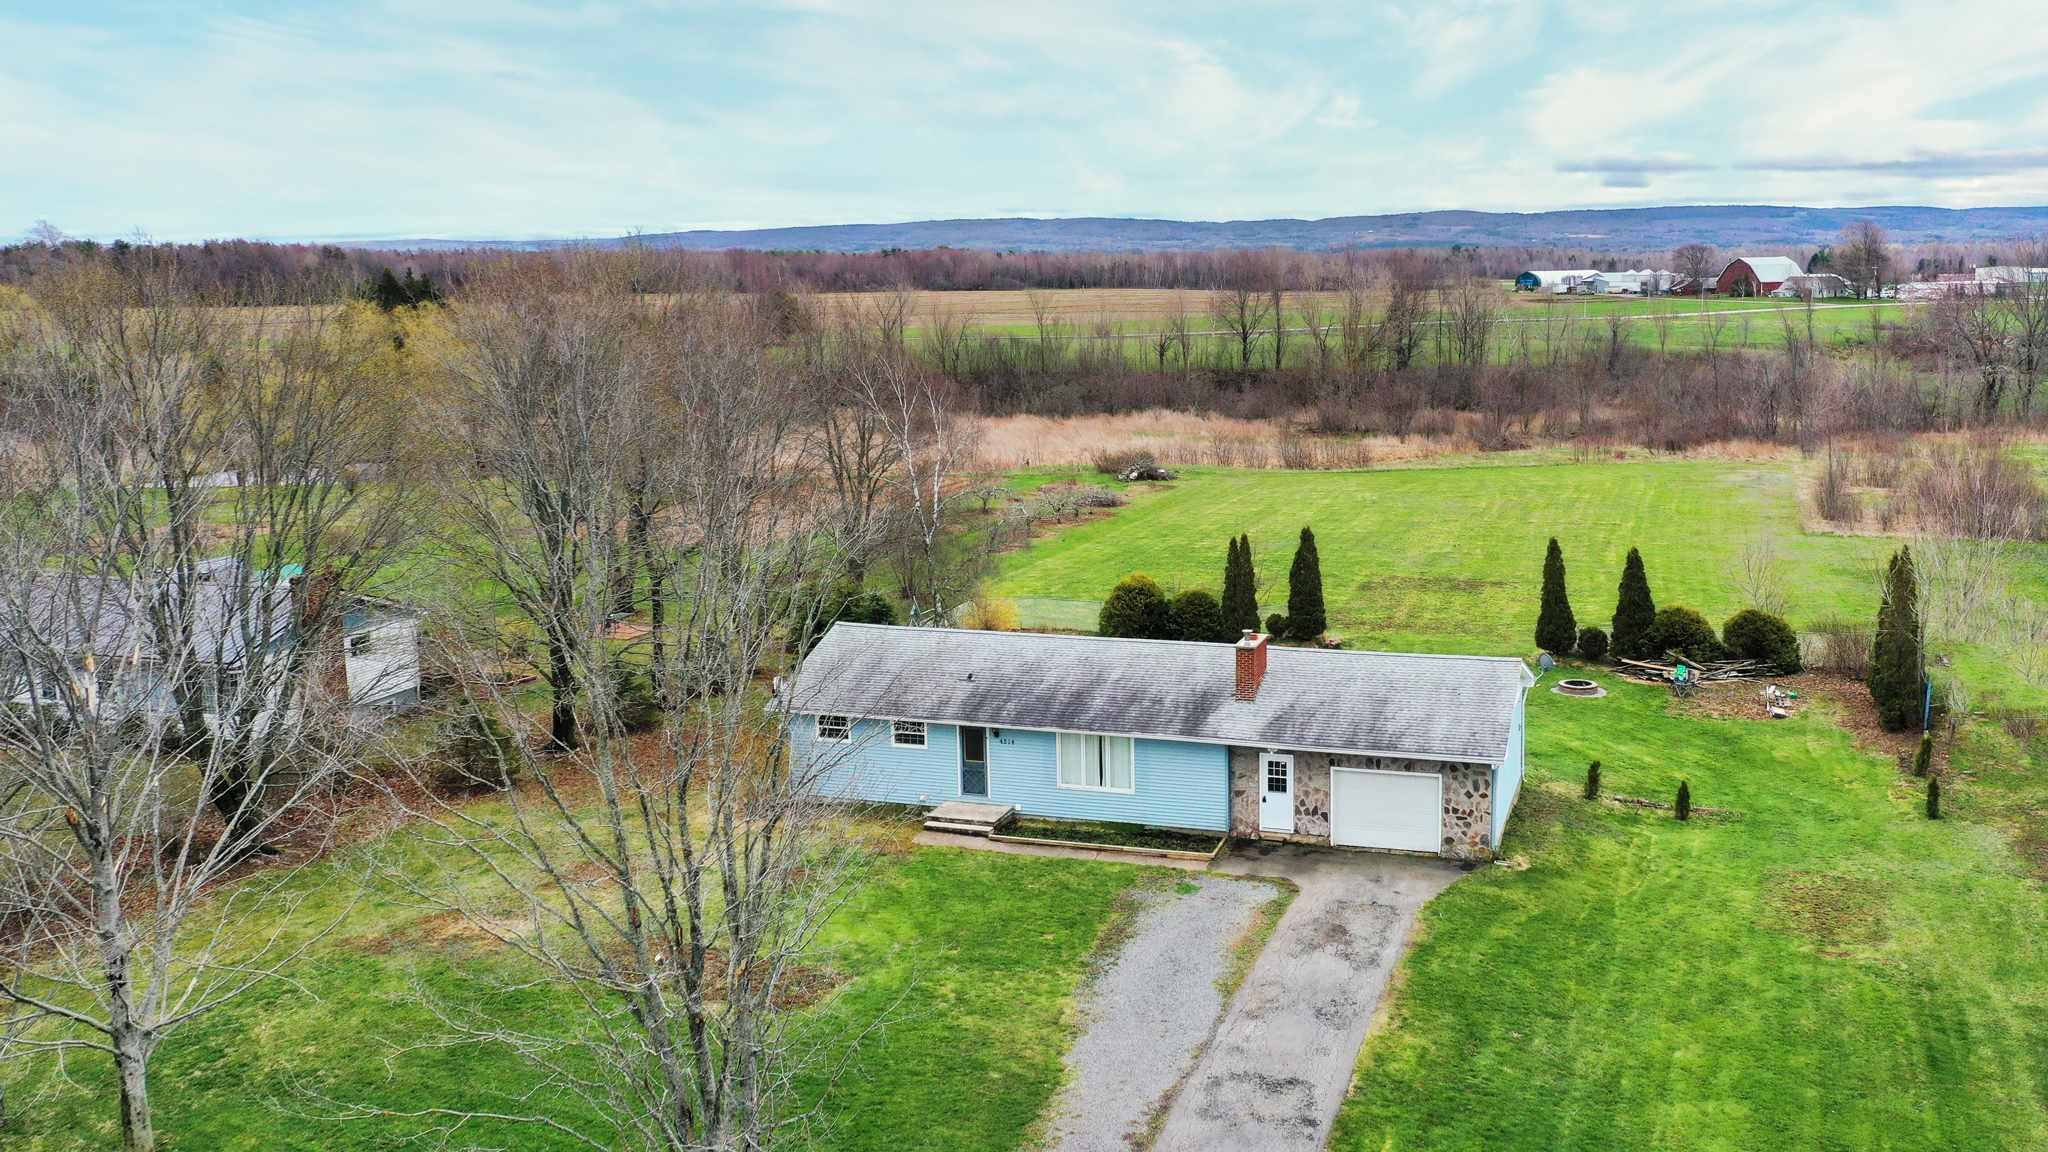 Main Photo: 4514 Brooklyn Street in Somerset: 404-Kings County Residential for sale (Annapolis Valley)  : MLS®# 202109976